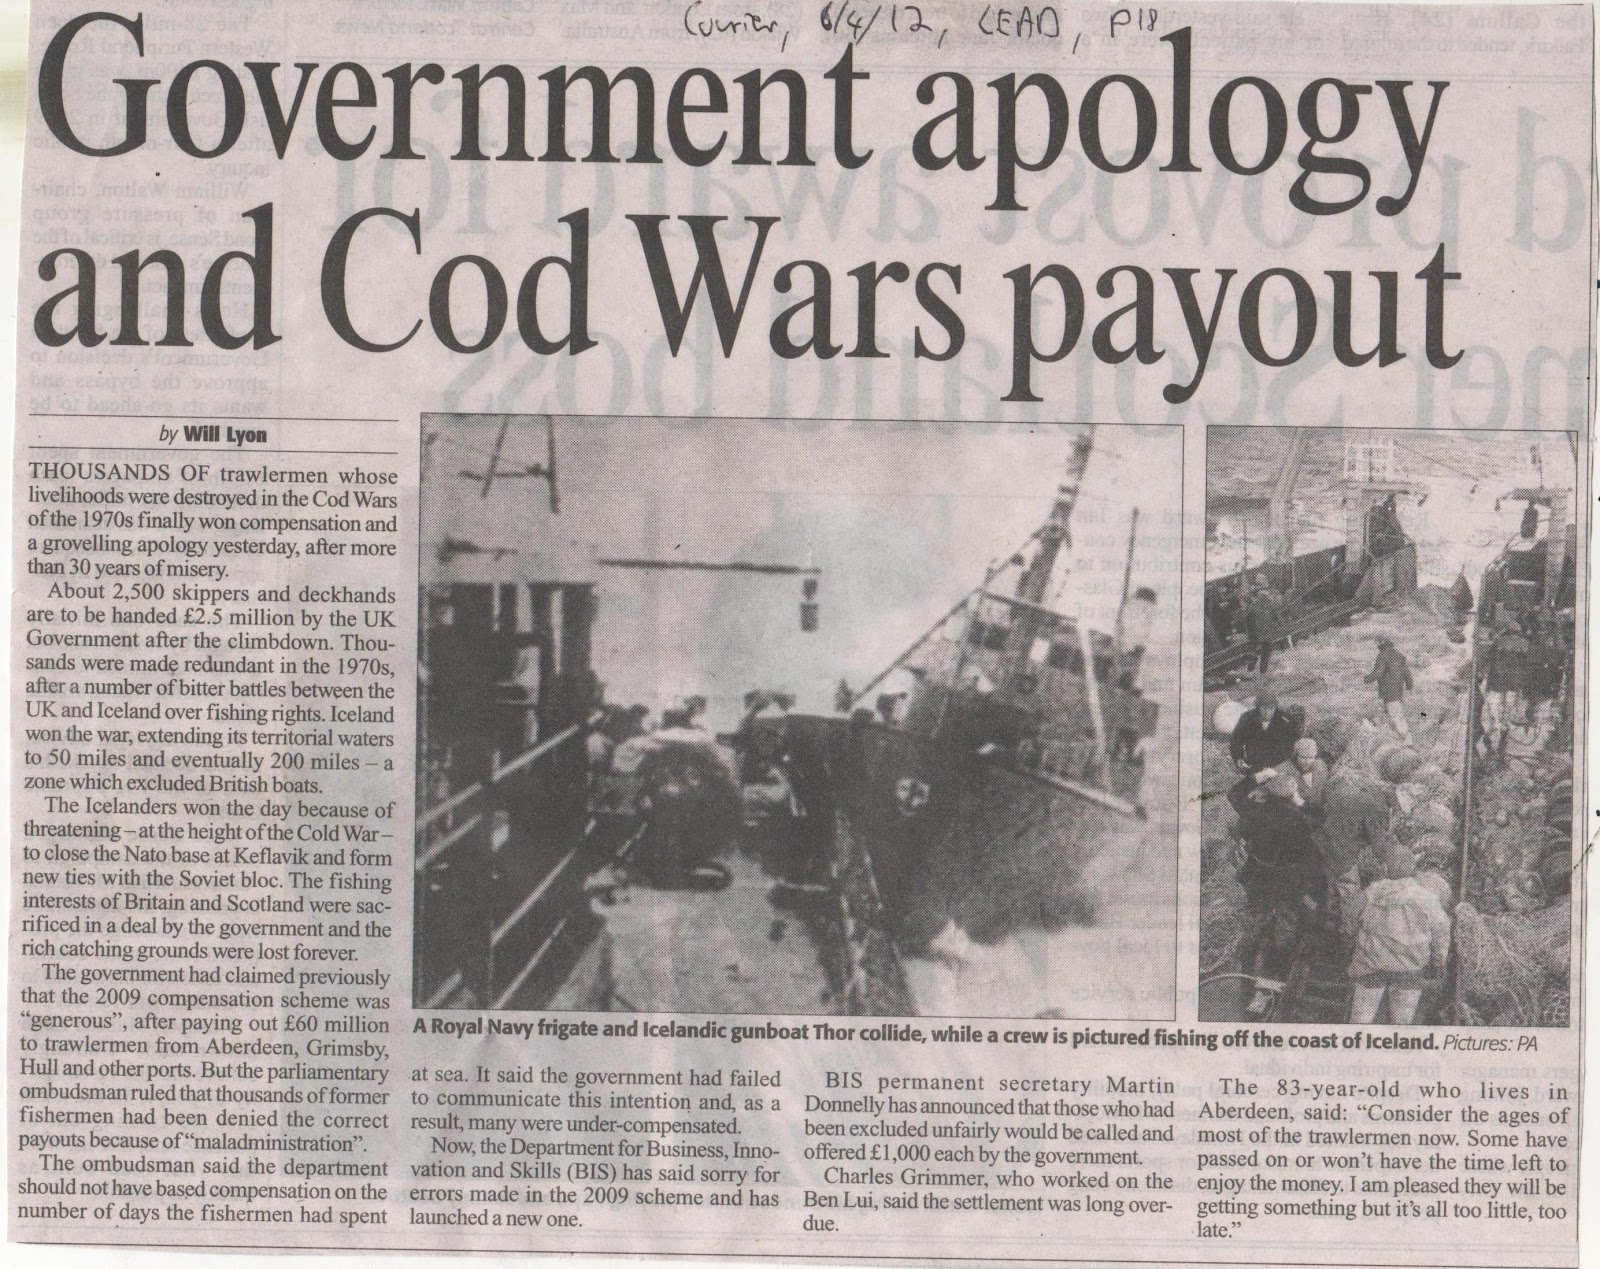 2012.04.06 - Government Apology And Cod Wars Payout